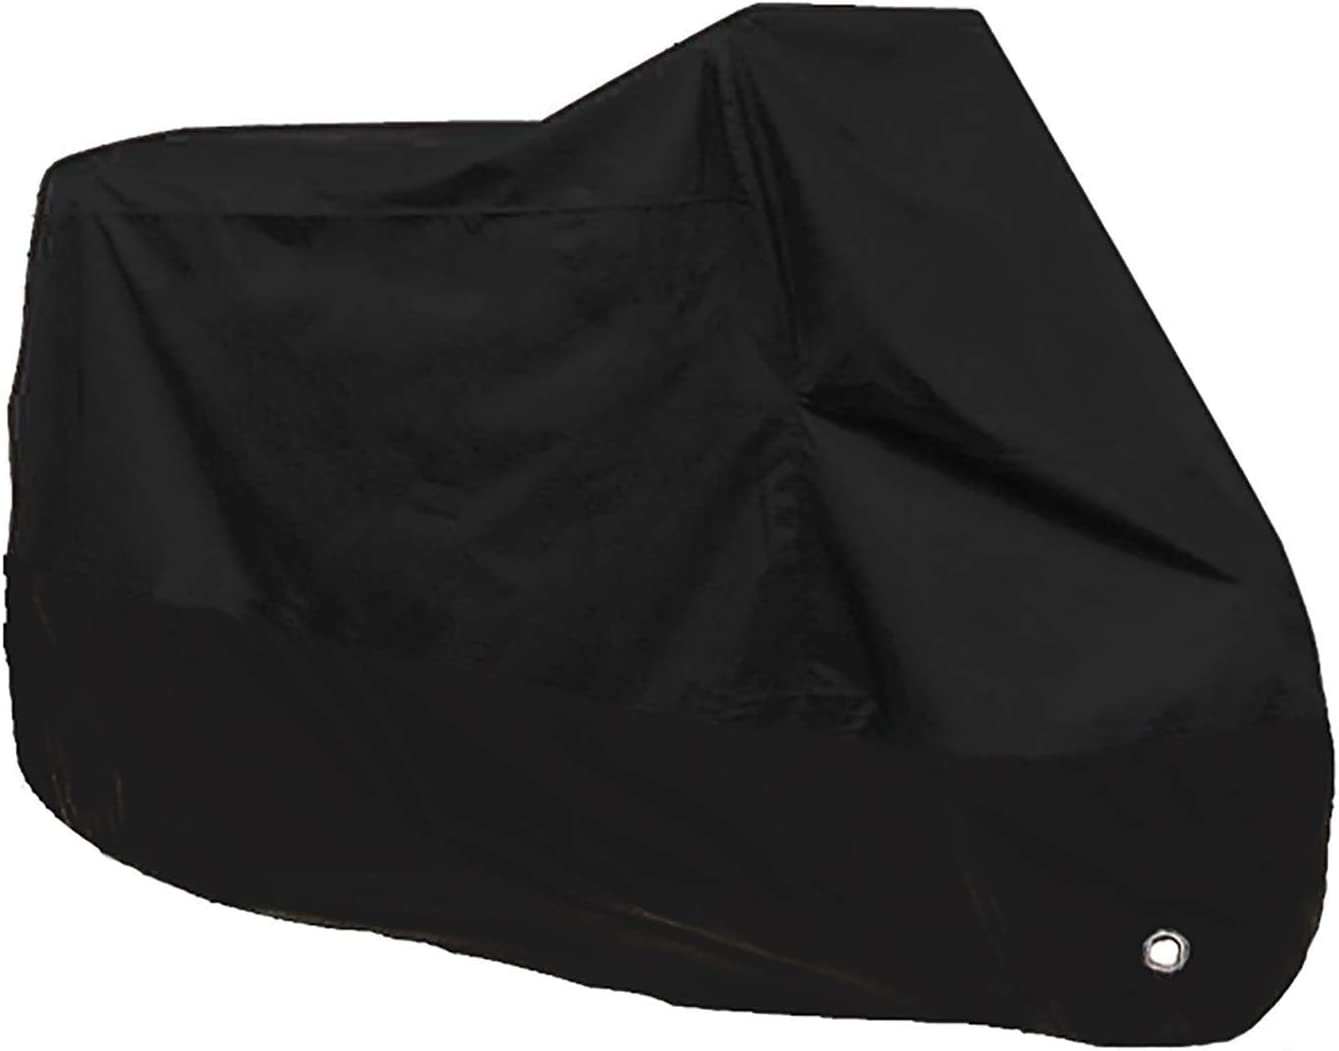 ACHsj Time OFFicial store sale Motorcycle Cover Powersports Vehicle w Covers Compatible -